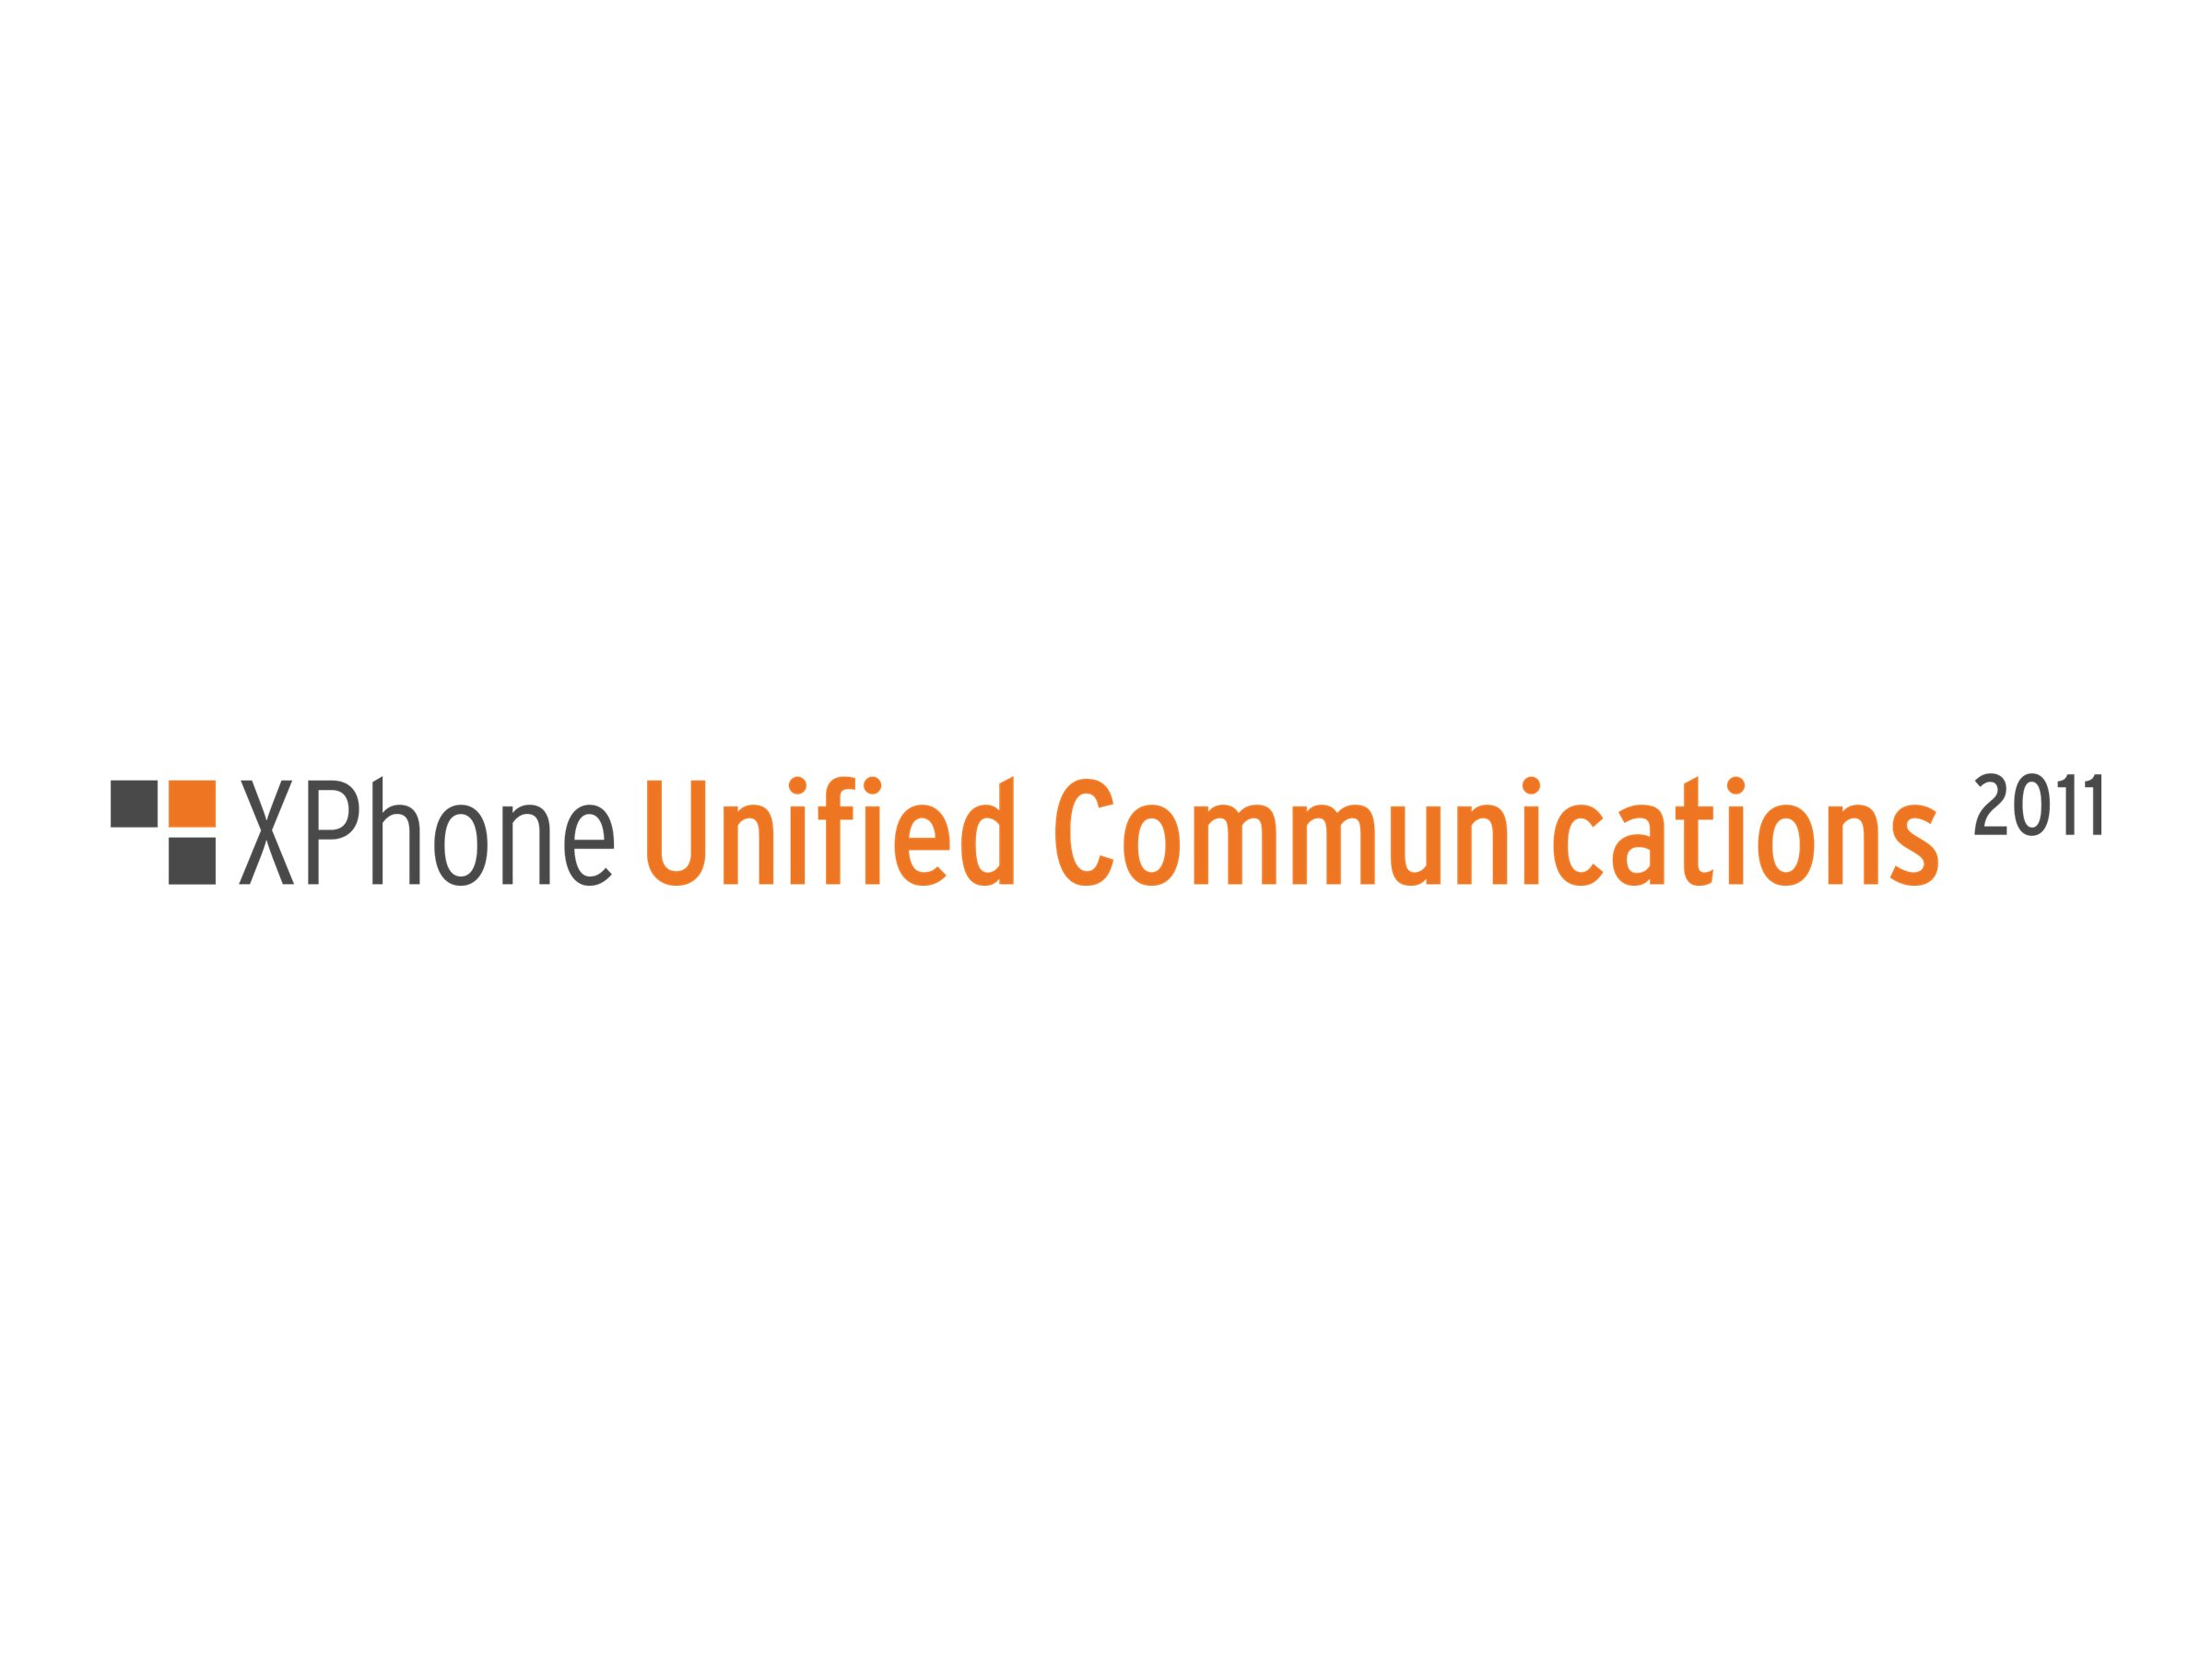 XPhone Unified Communications Voicemail 2011 - Lizenz - 1 benannter Benutzer - Win